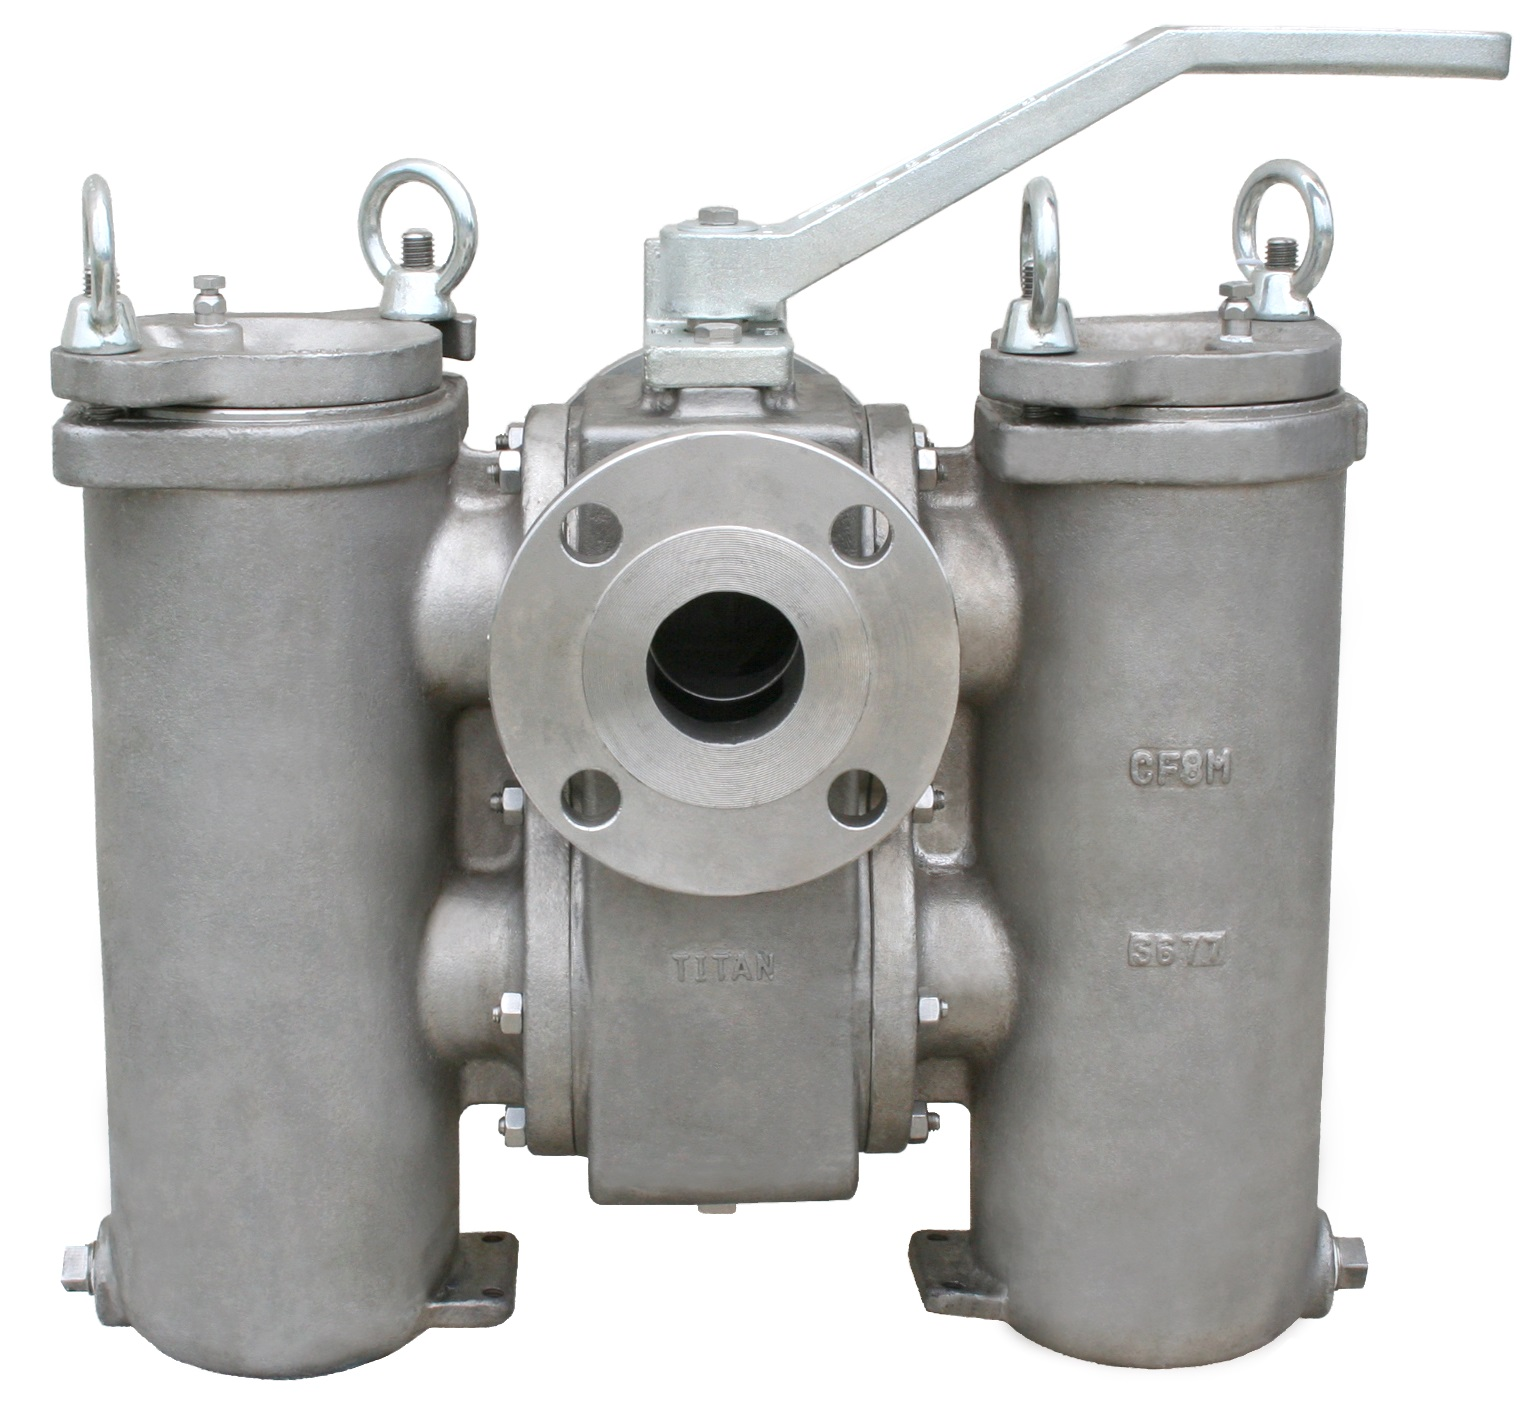 What Is The Difference Between Simplex And Duplex Strainers Fuel Filter Mann Hummel Strainer